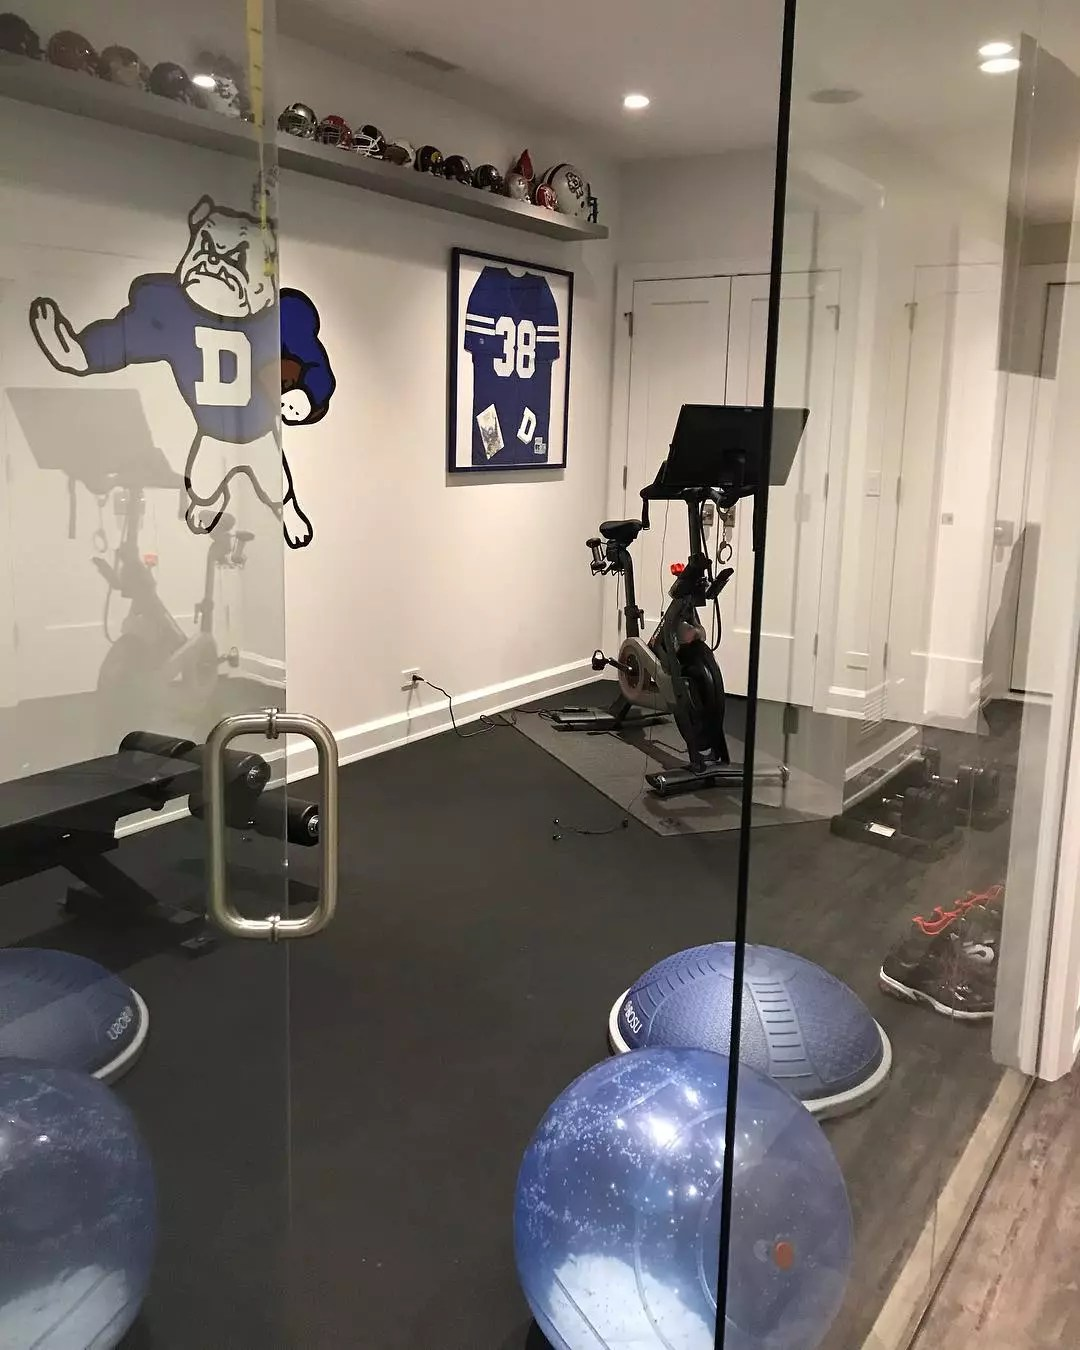 Fitness room in home decked out with Drake University wall decor. Photo by Instagram user @jamieschachteldesign